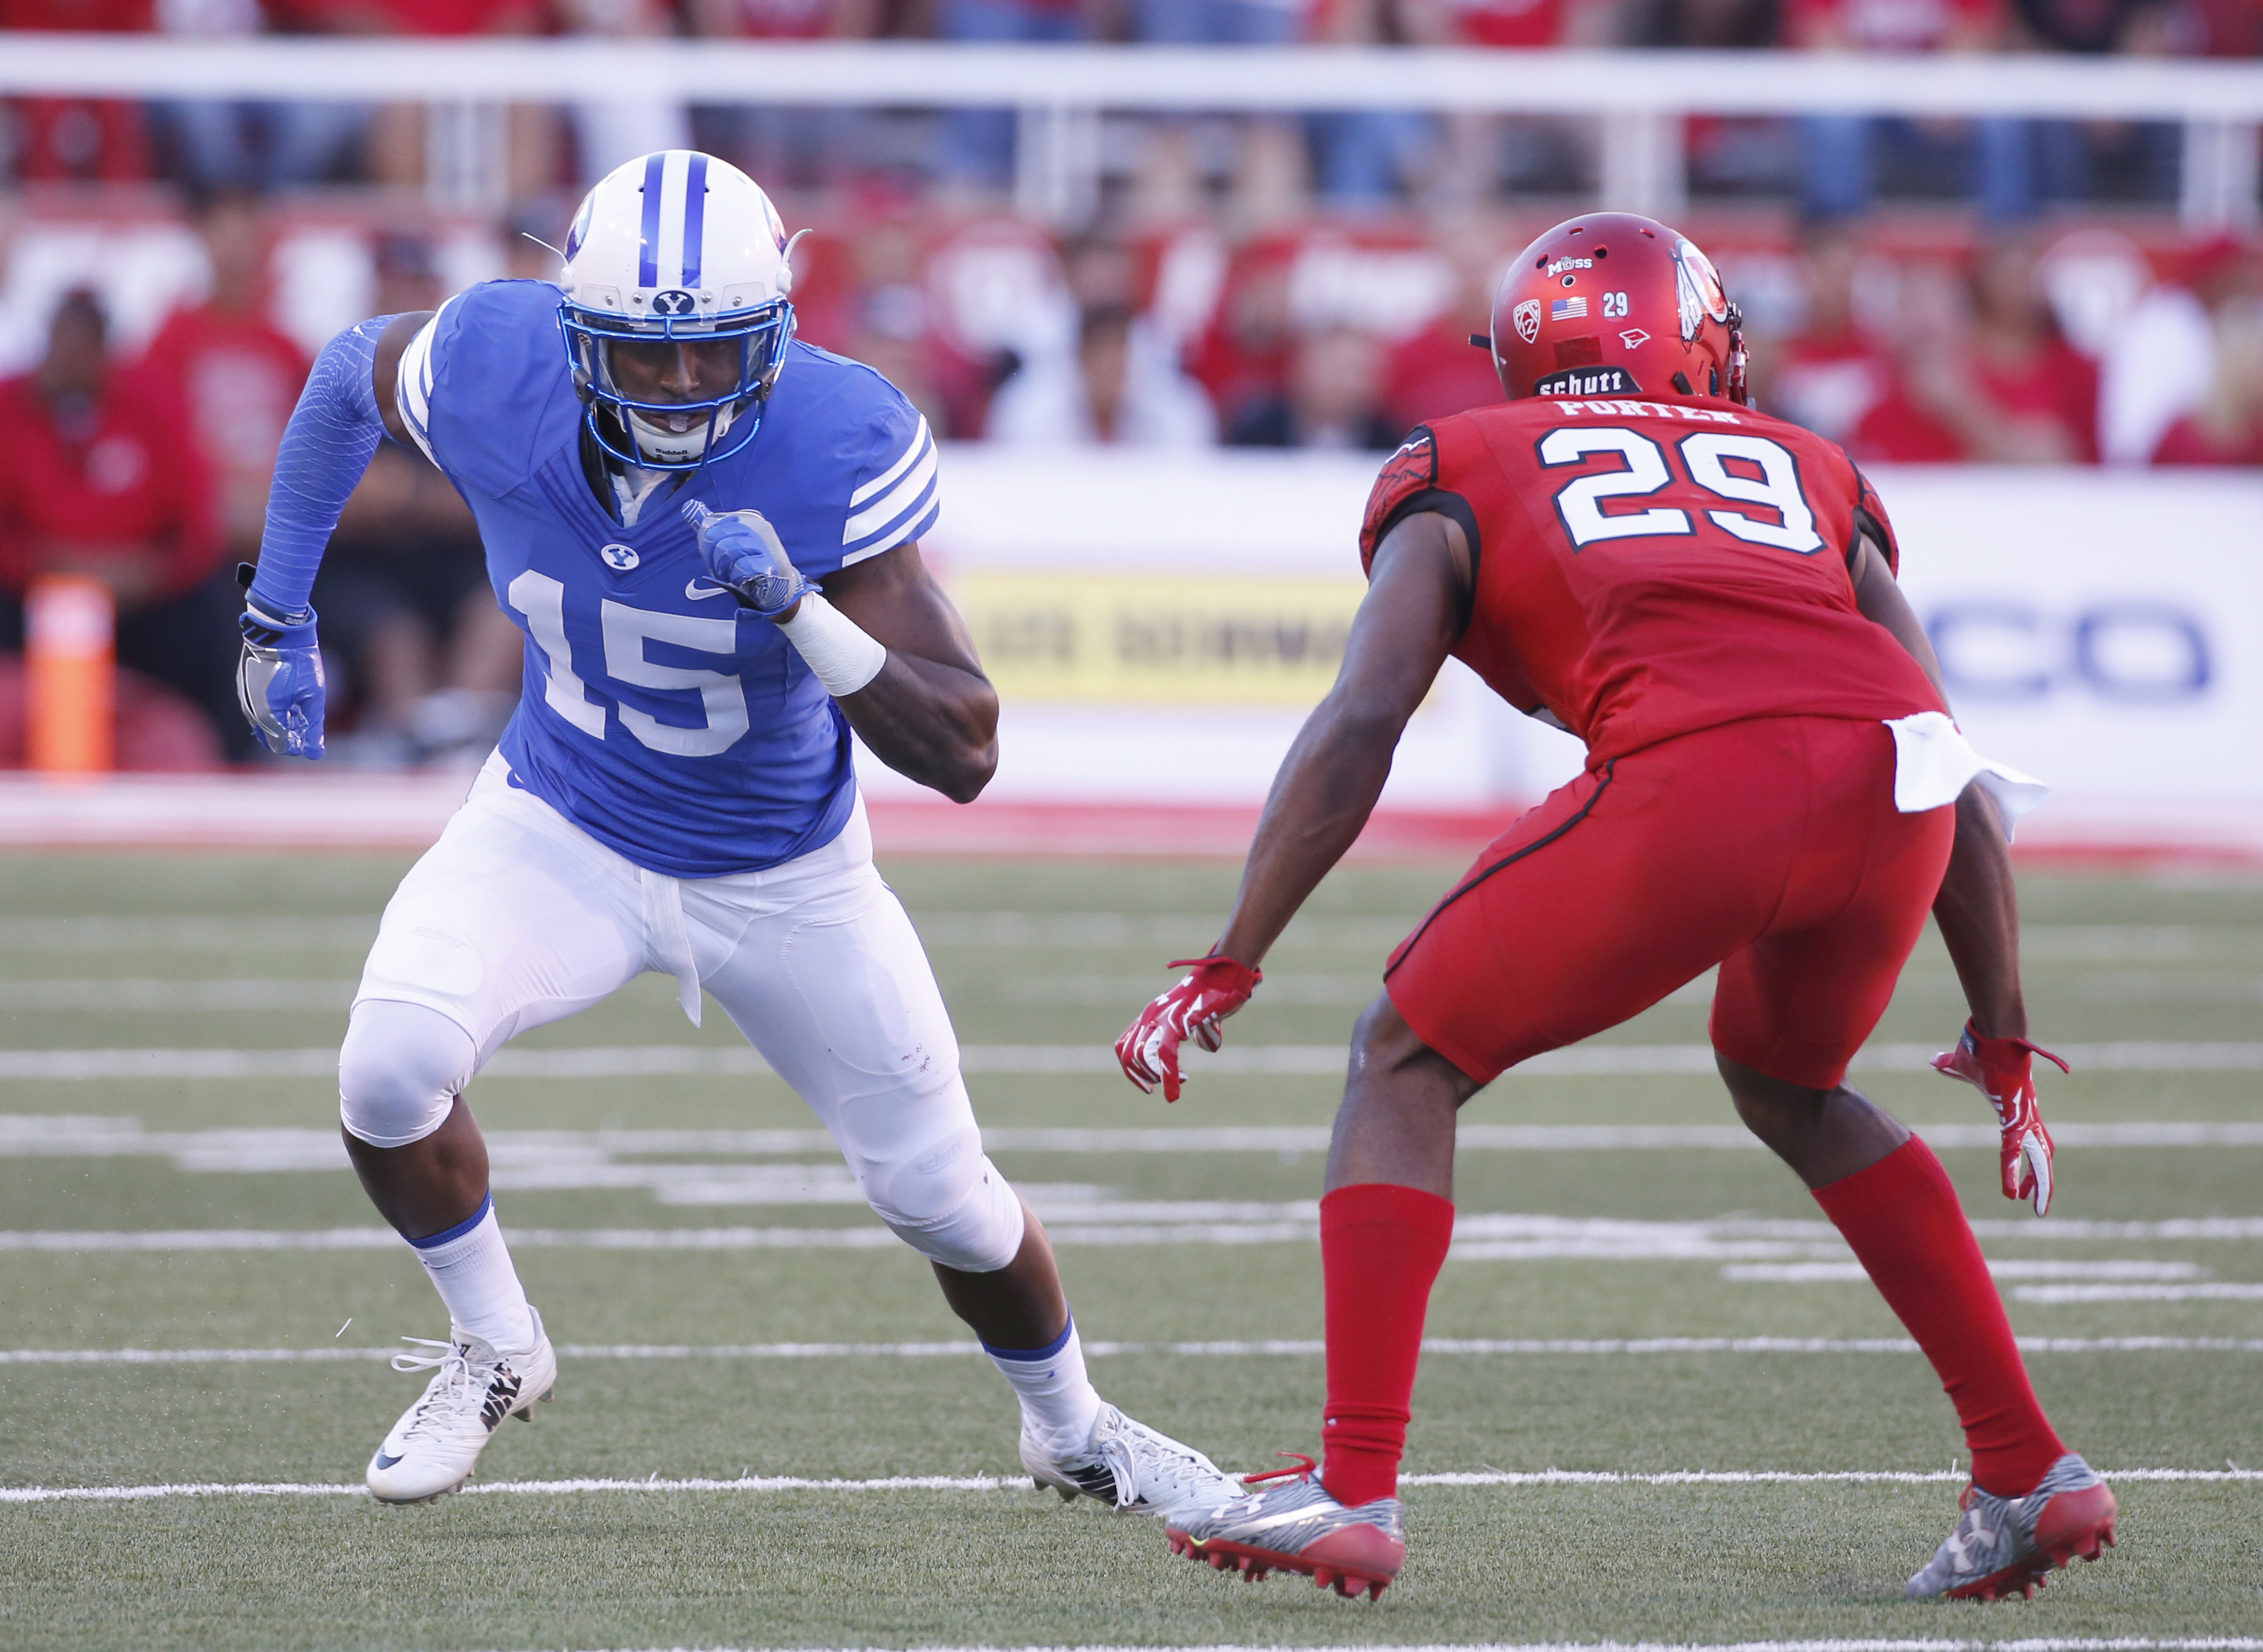 At Utah, not even Pepsi can wear BYU blue